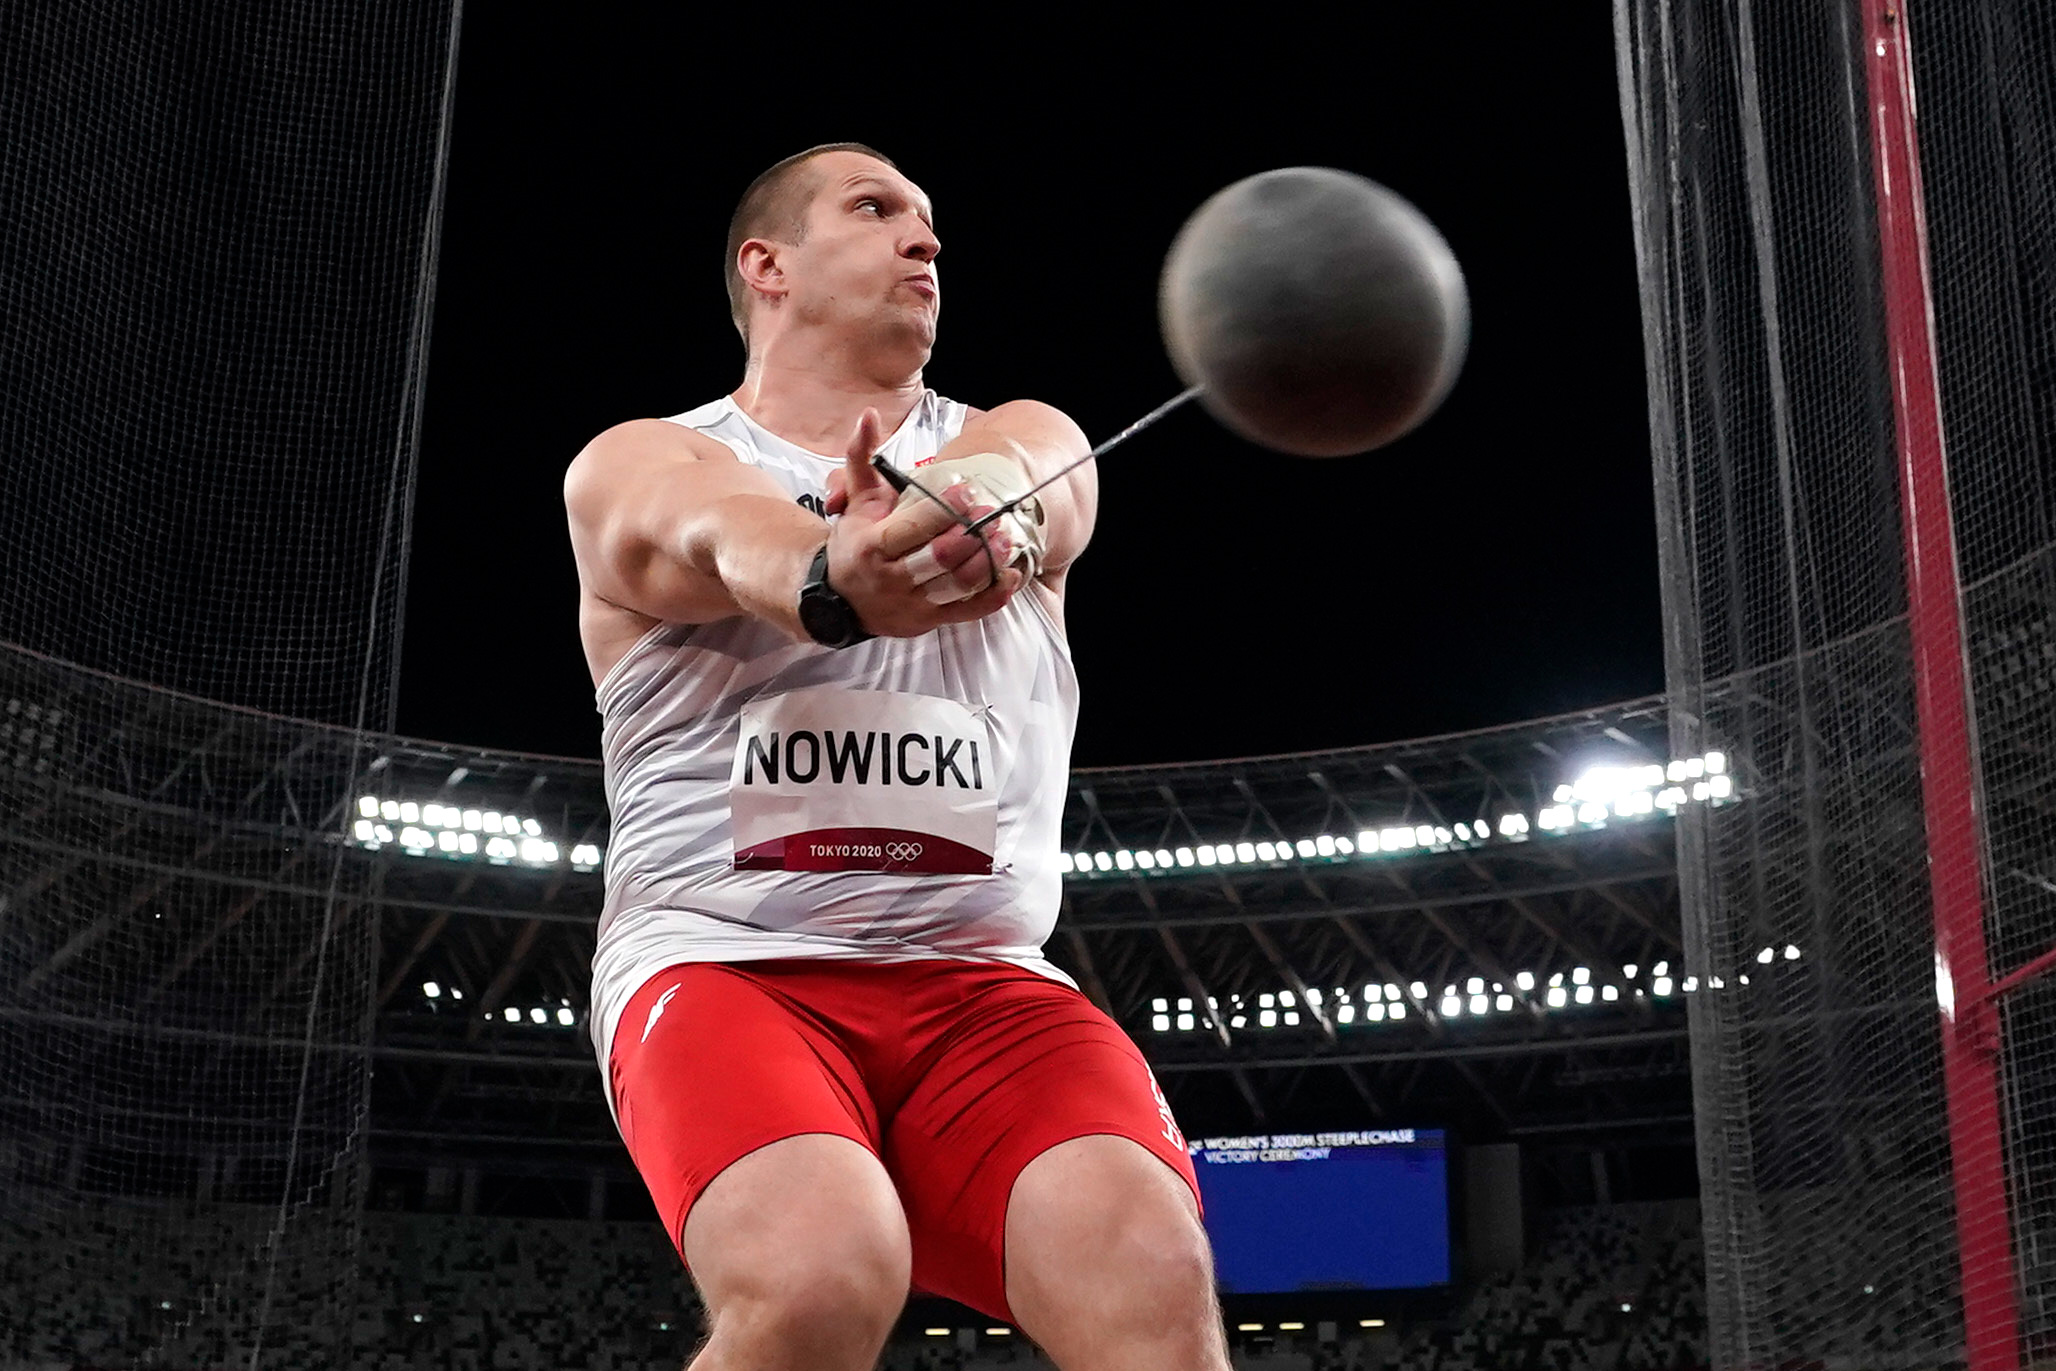 Poland's Wojciech Nowicki competes in the hammer throw final on August 4.